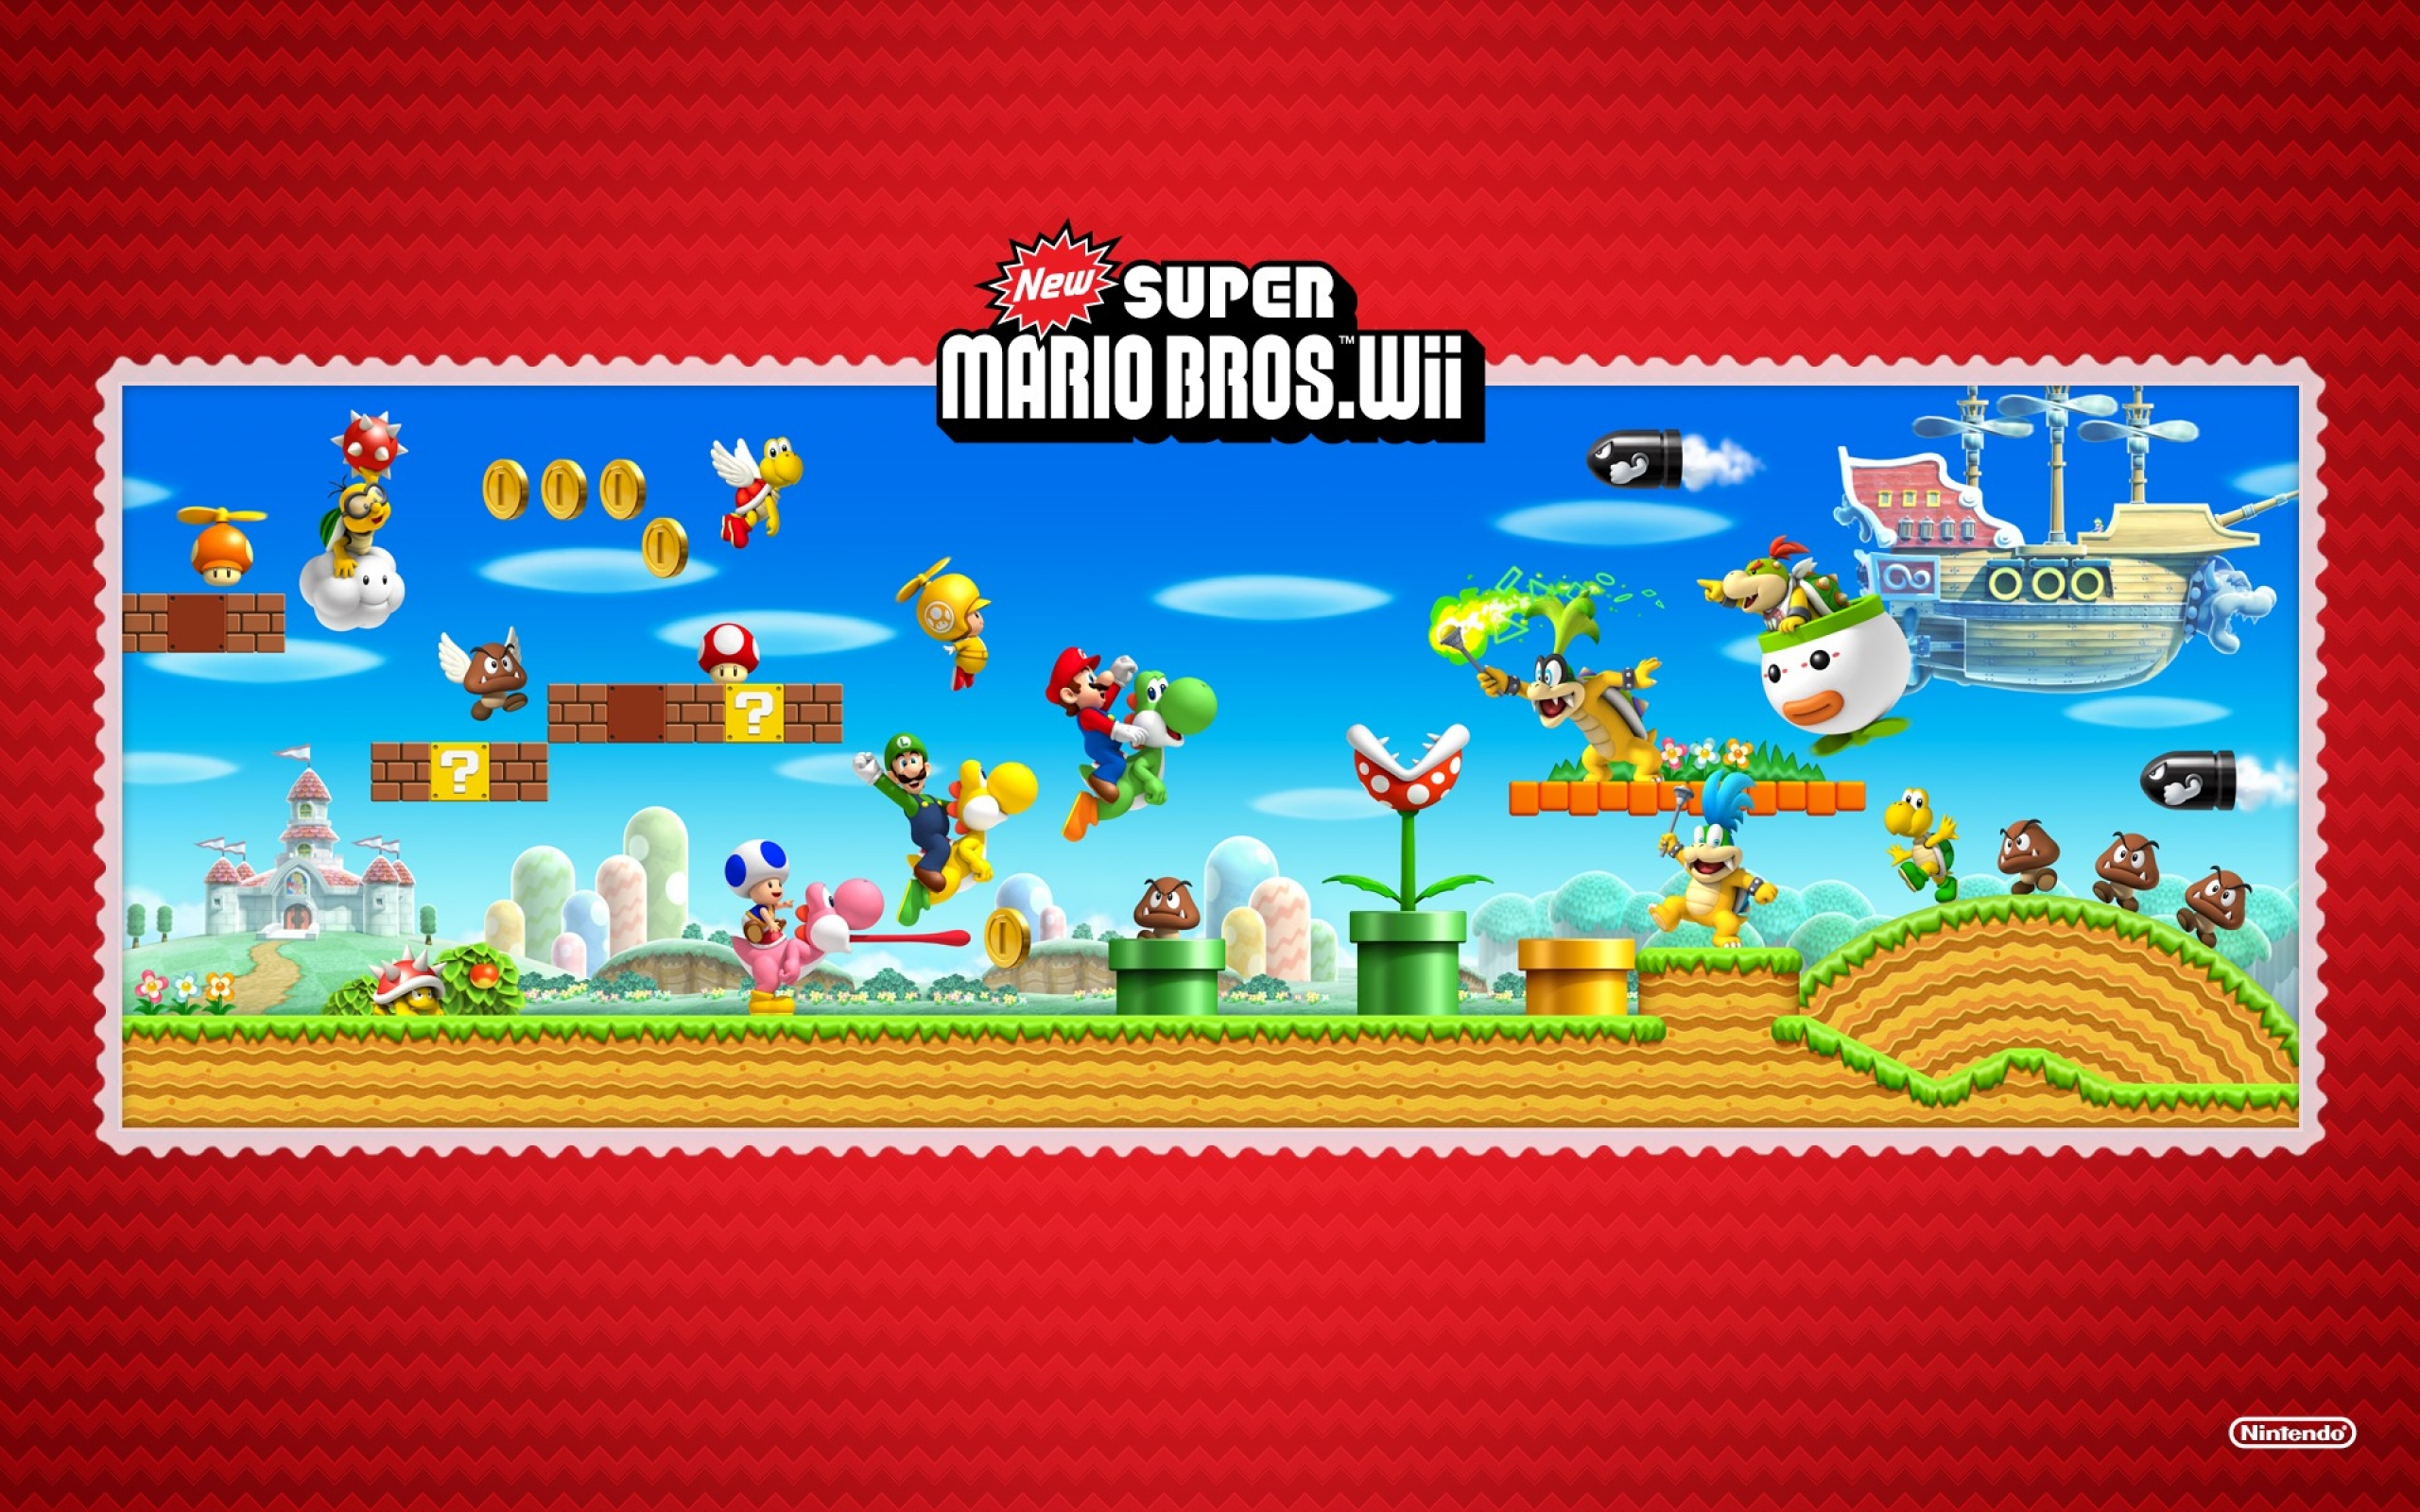 Home supermario games supermario wallpapers - 2560x1600 New Super Mario Bros Wii